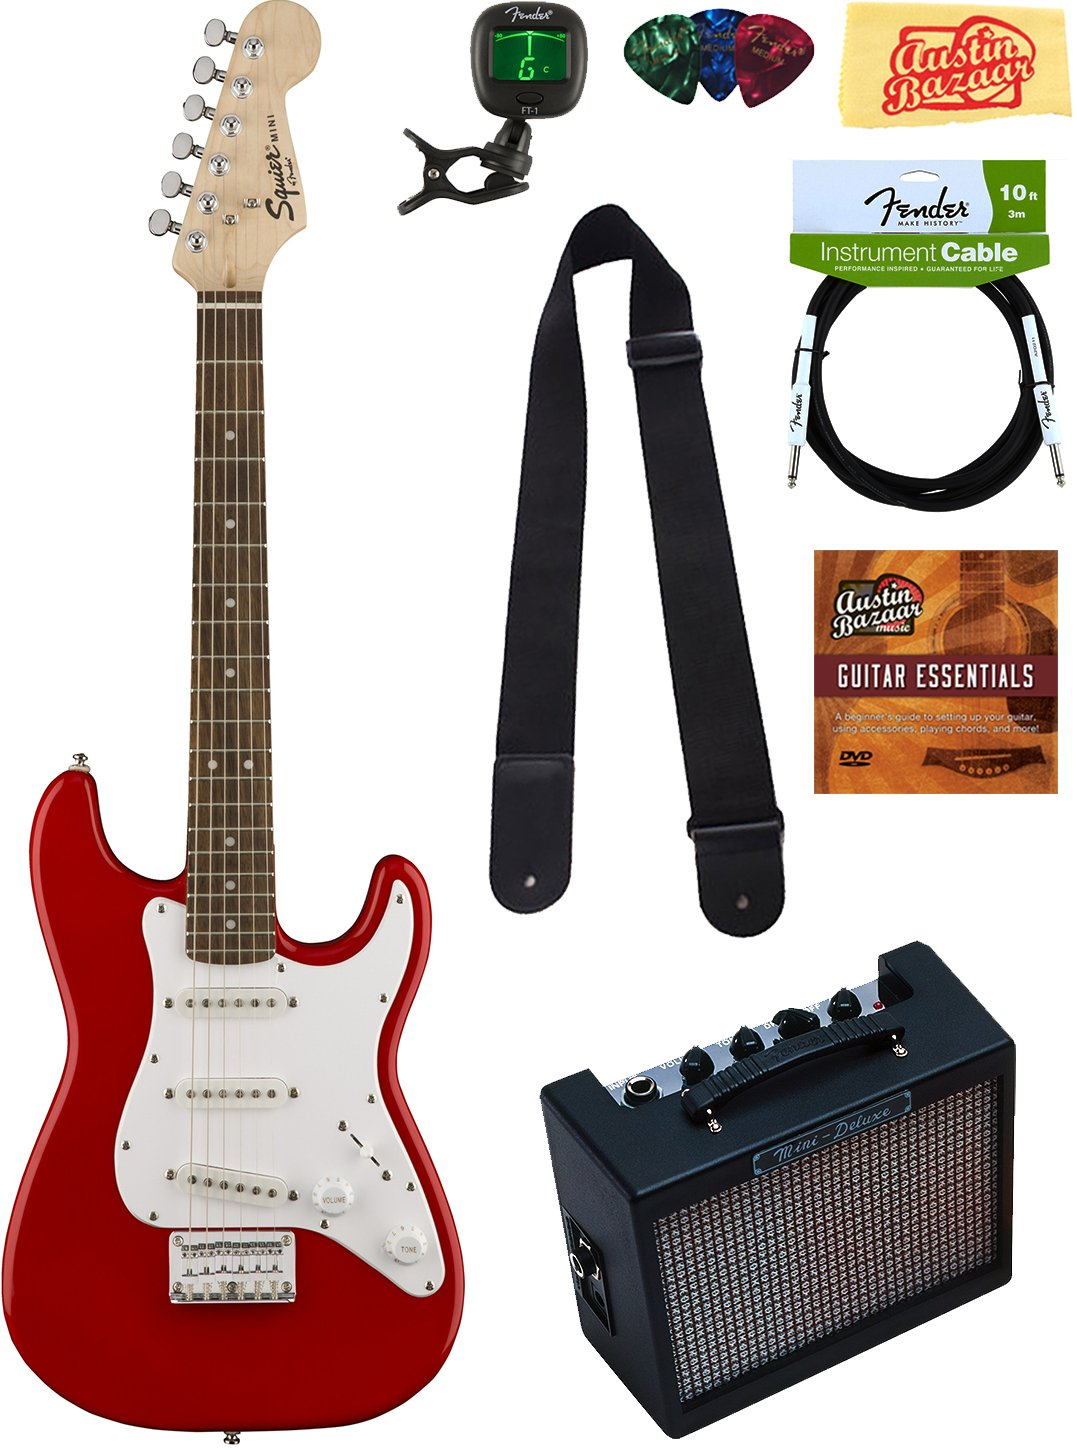 Squier by Fender Mini Strat Electric Guitar - Red Bundle with Amplifier, Instrument Cable, Tuner, Strap, Picks, Austin Bazaar Instructional DVD, and Polishing Cloth by Squier